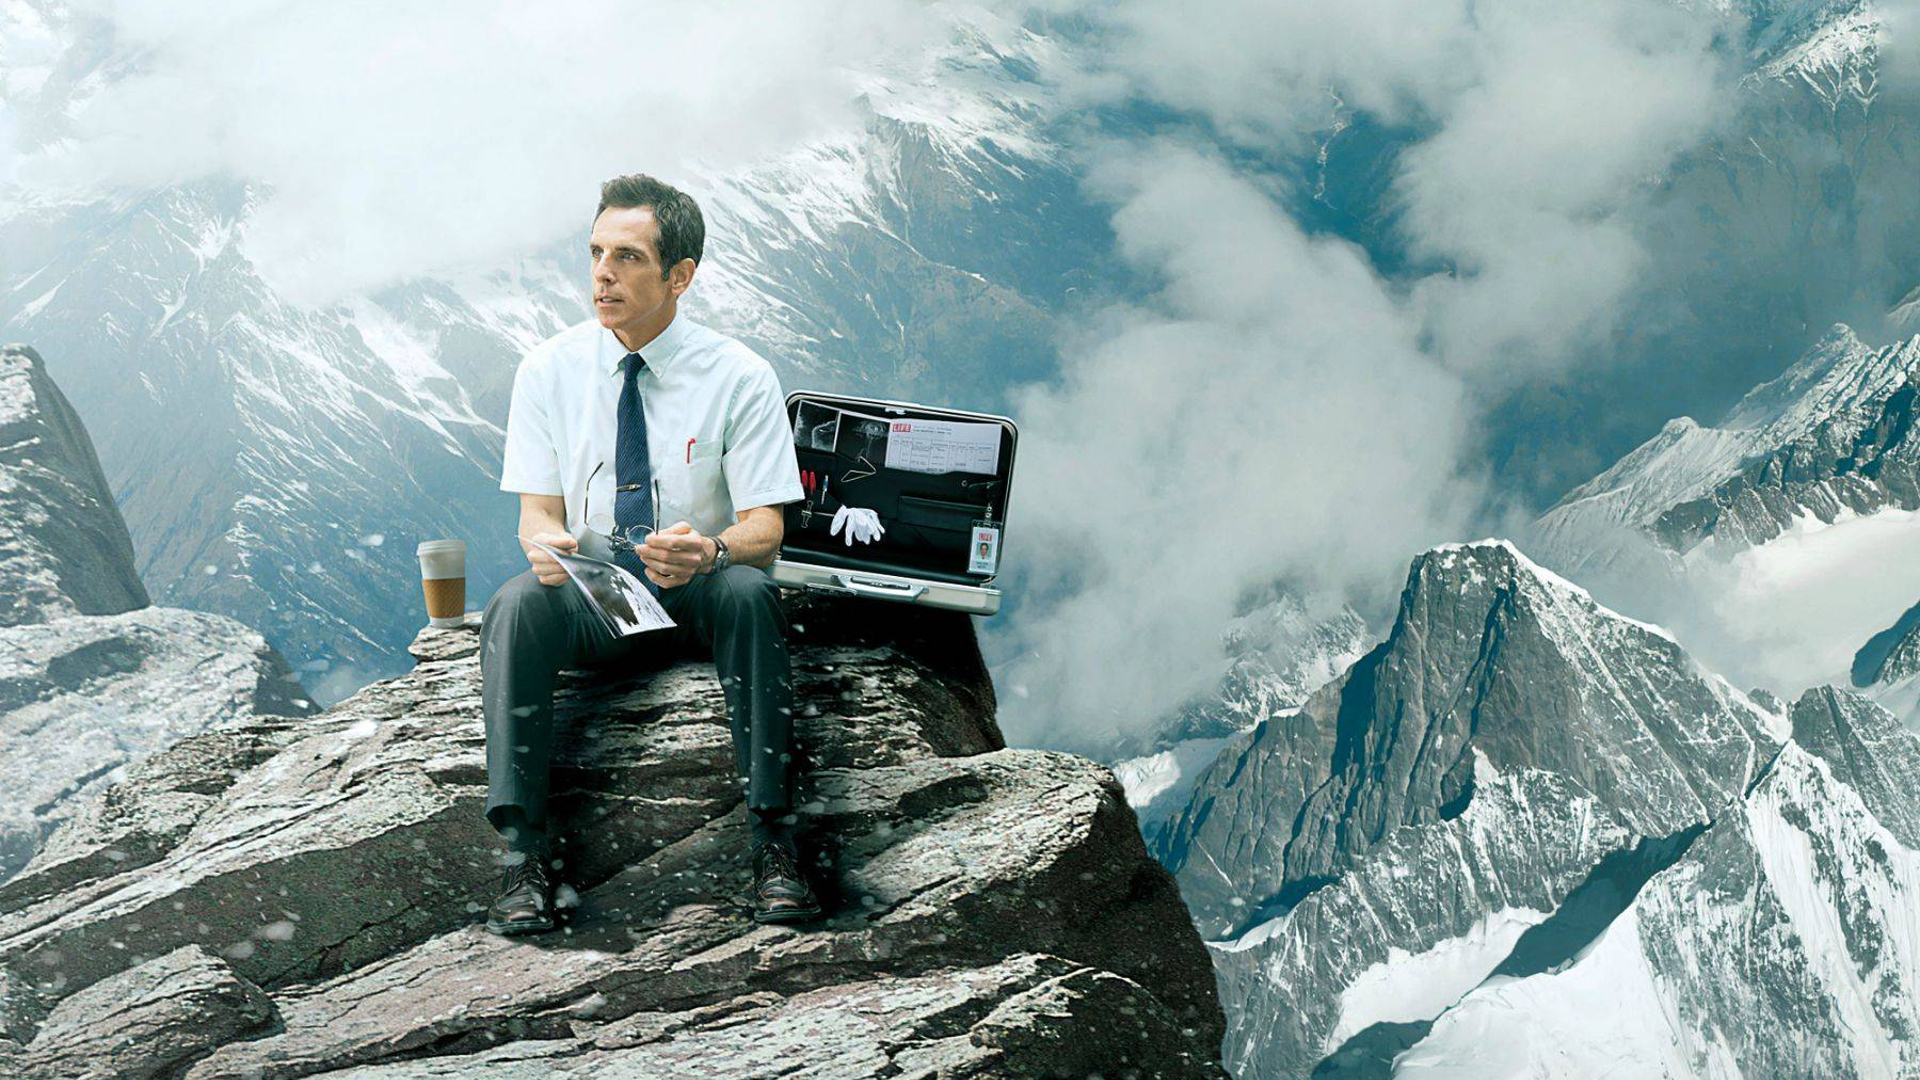 walter mitty A moment comes when you stop dreaming, start living and discover your destiny  for day dreamer walter mitty, that time is now when his job, along with that of.